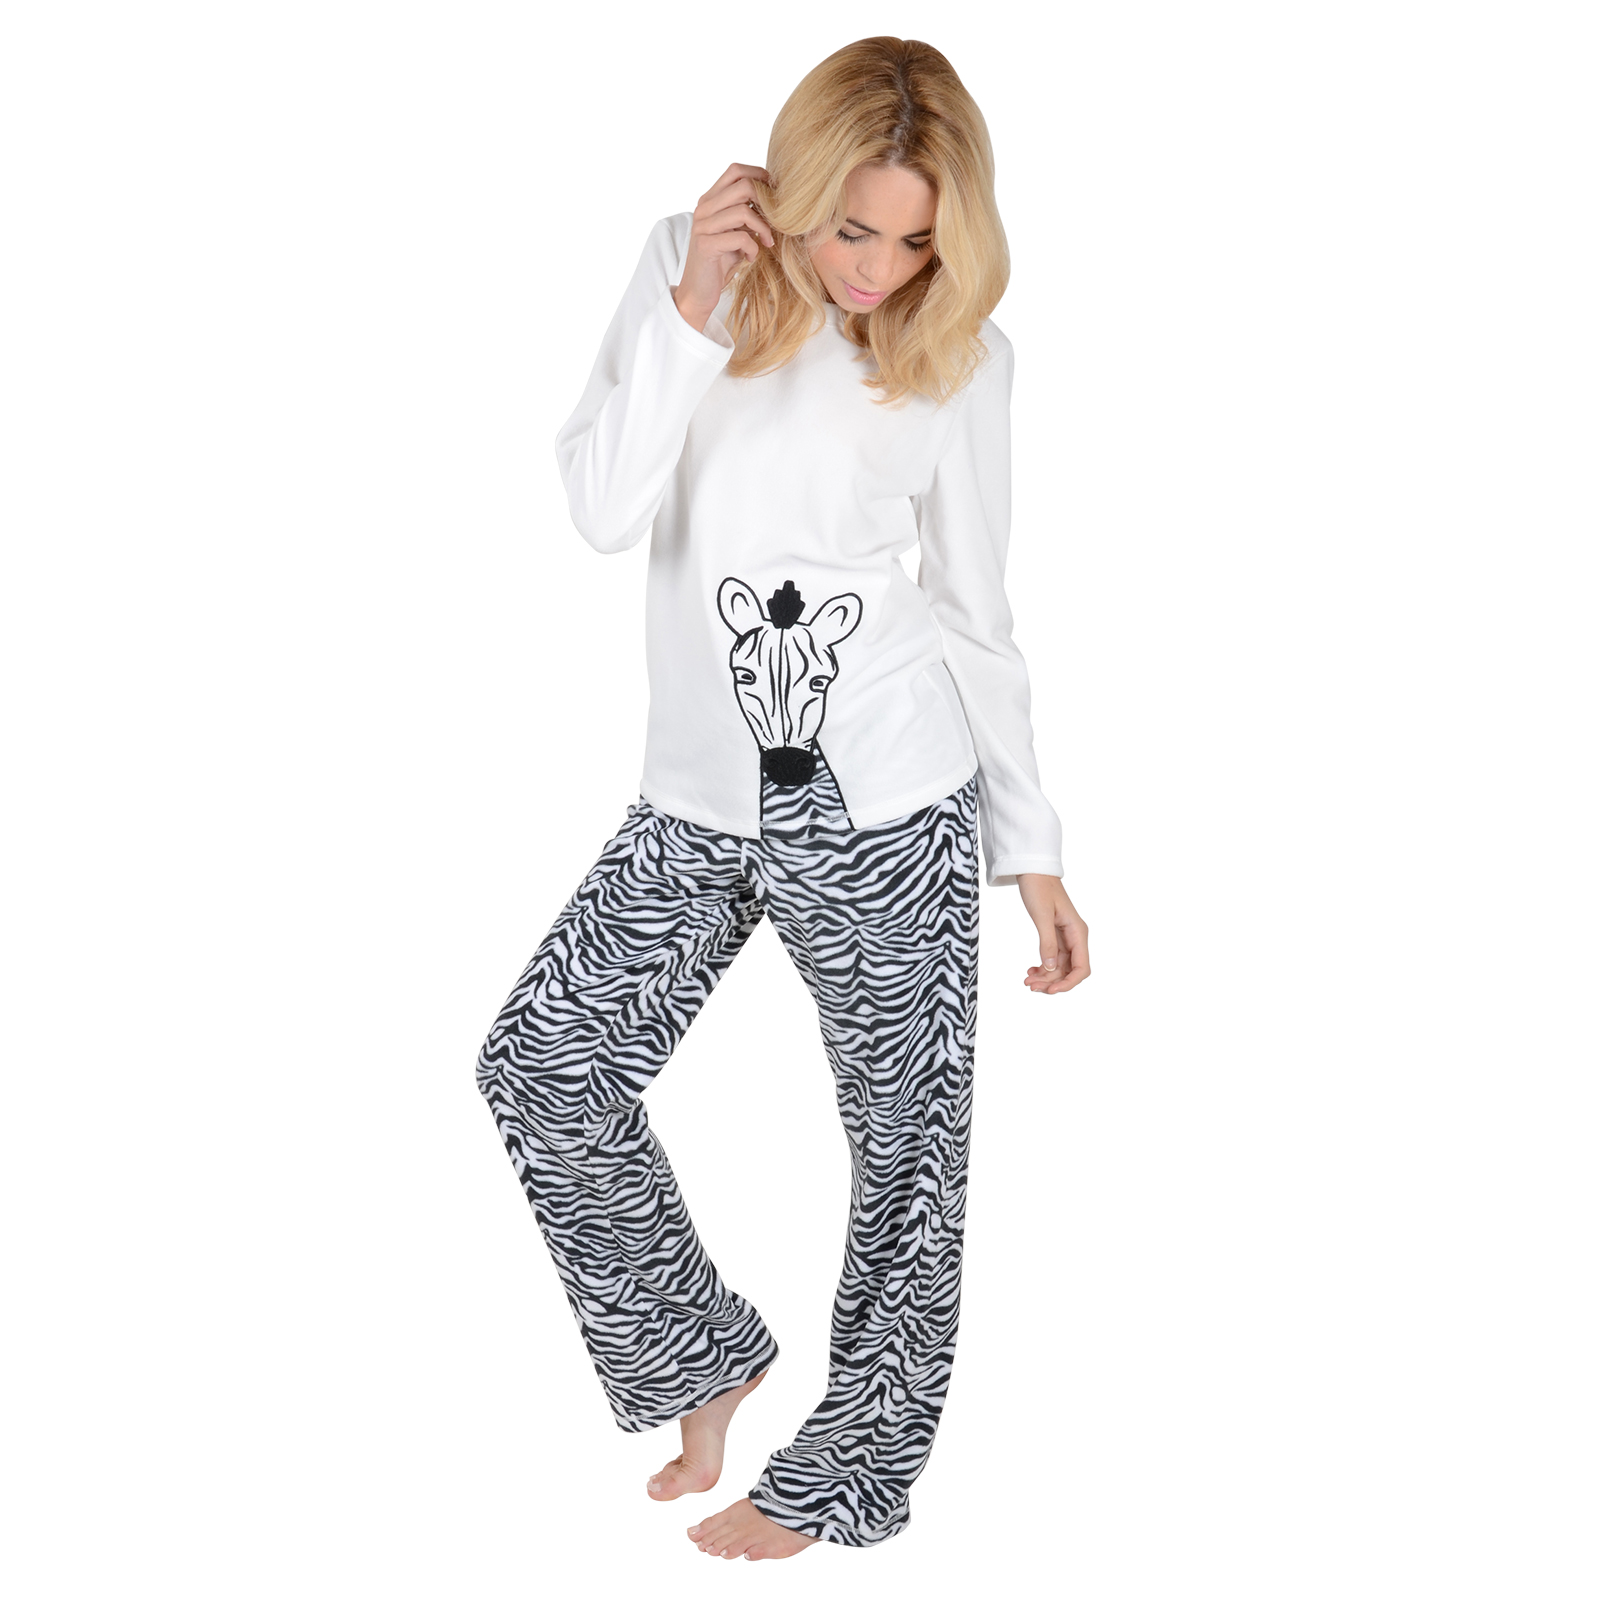 White. Beige. Other. See more colors. Price $ to $ Go. Please enter a minimum and maximum price. $5 - $ Ladies Pajamas. Showing 40 of results that match your query. Search Product Result. Product - Laura Scott Women Gray Satin Trim Pajamas Lightweight Short Sleeve Pajama Set. Product Image. Price $ Product Title.